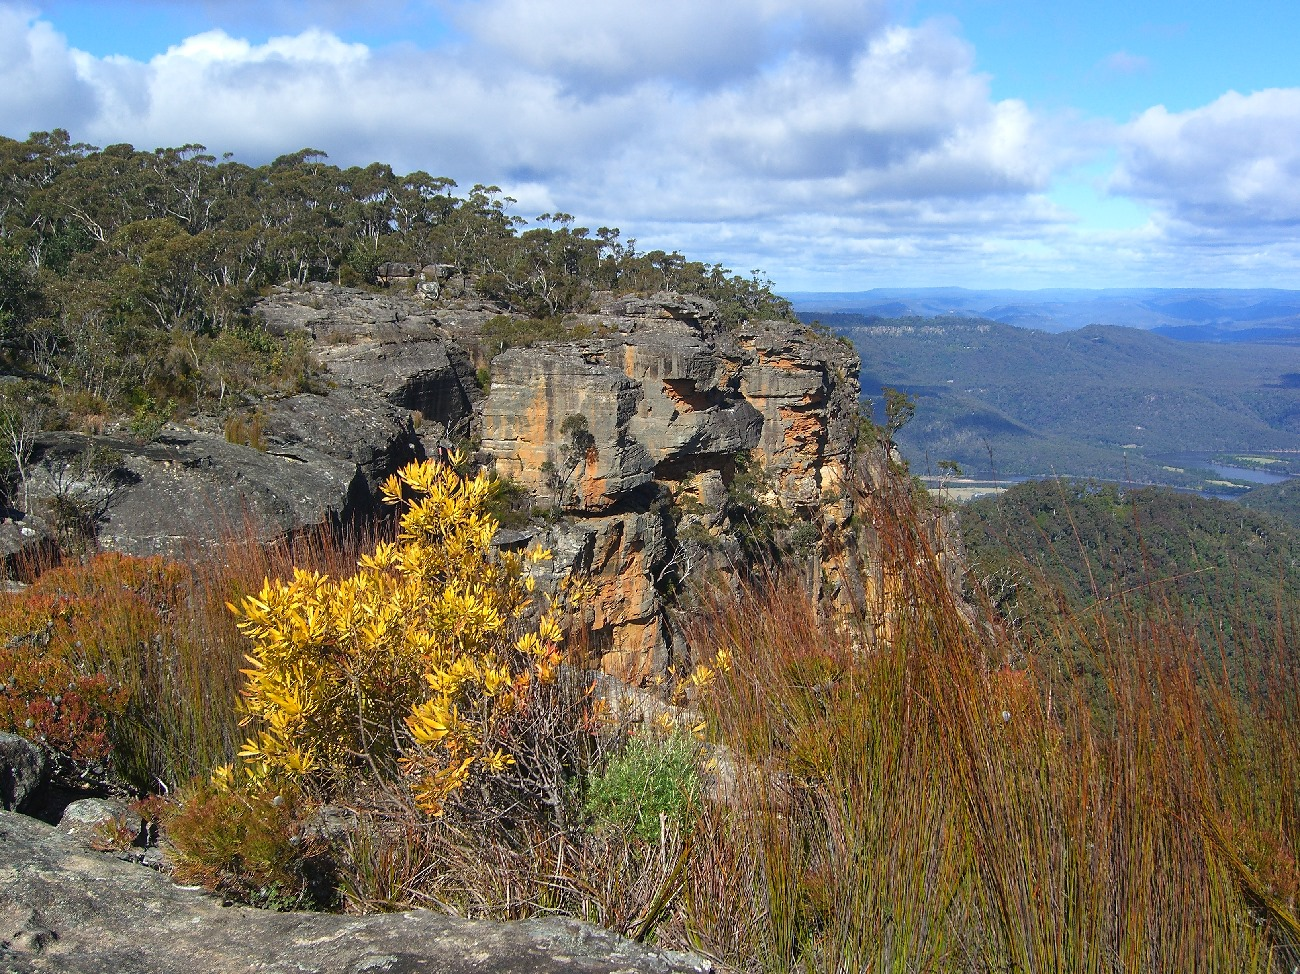 View towards the Shoalhaven River from Mt Carrialoo